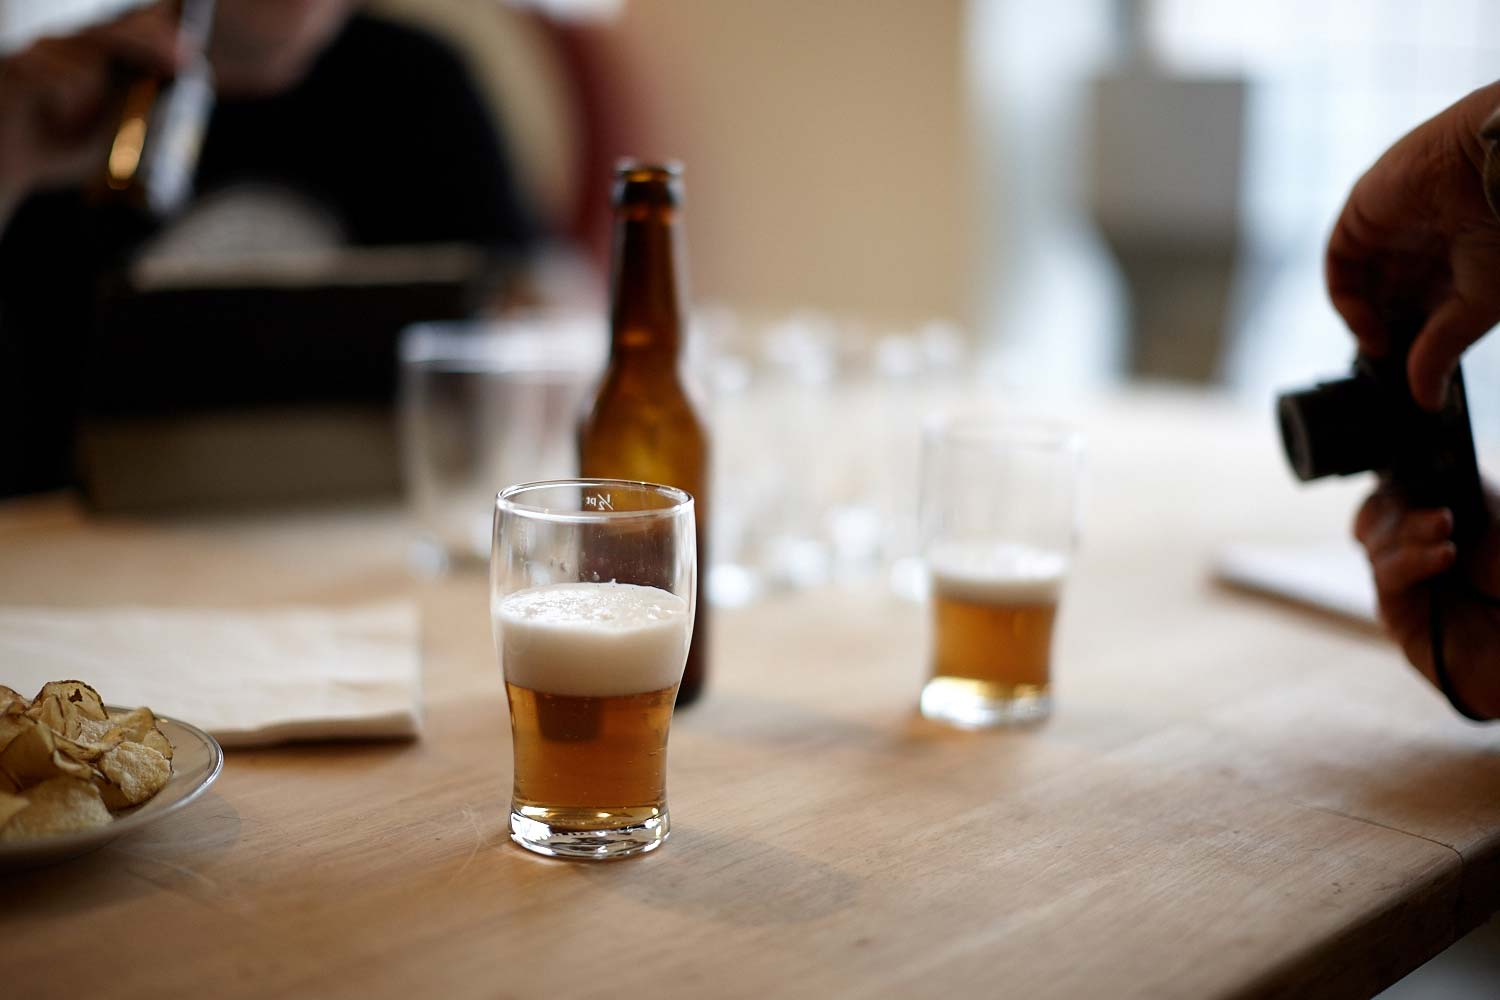 150501_lindh_craft_beer_norrkopings_bryggeri_0006